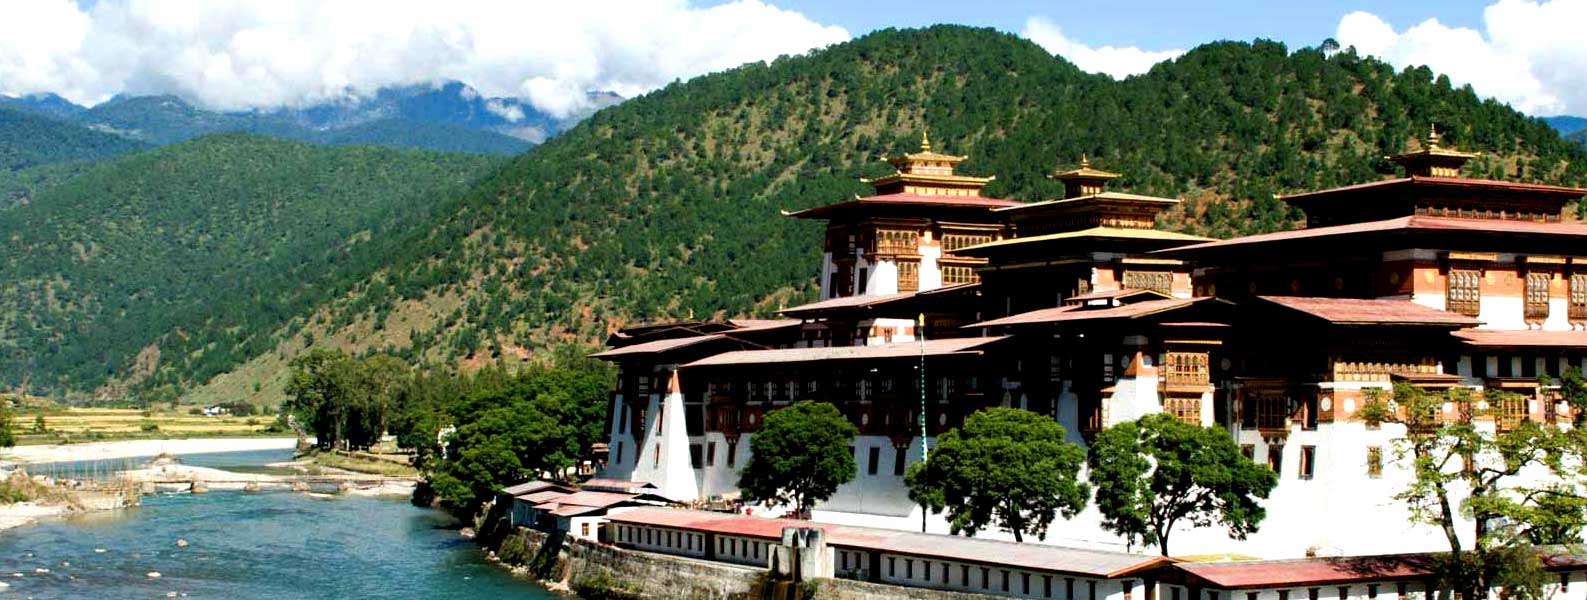 The Feel of Bhutan